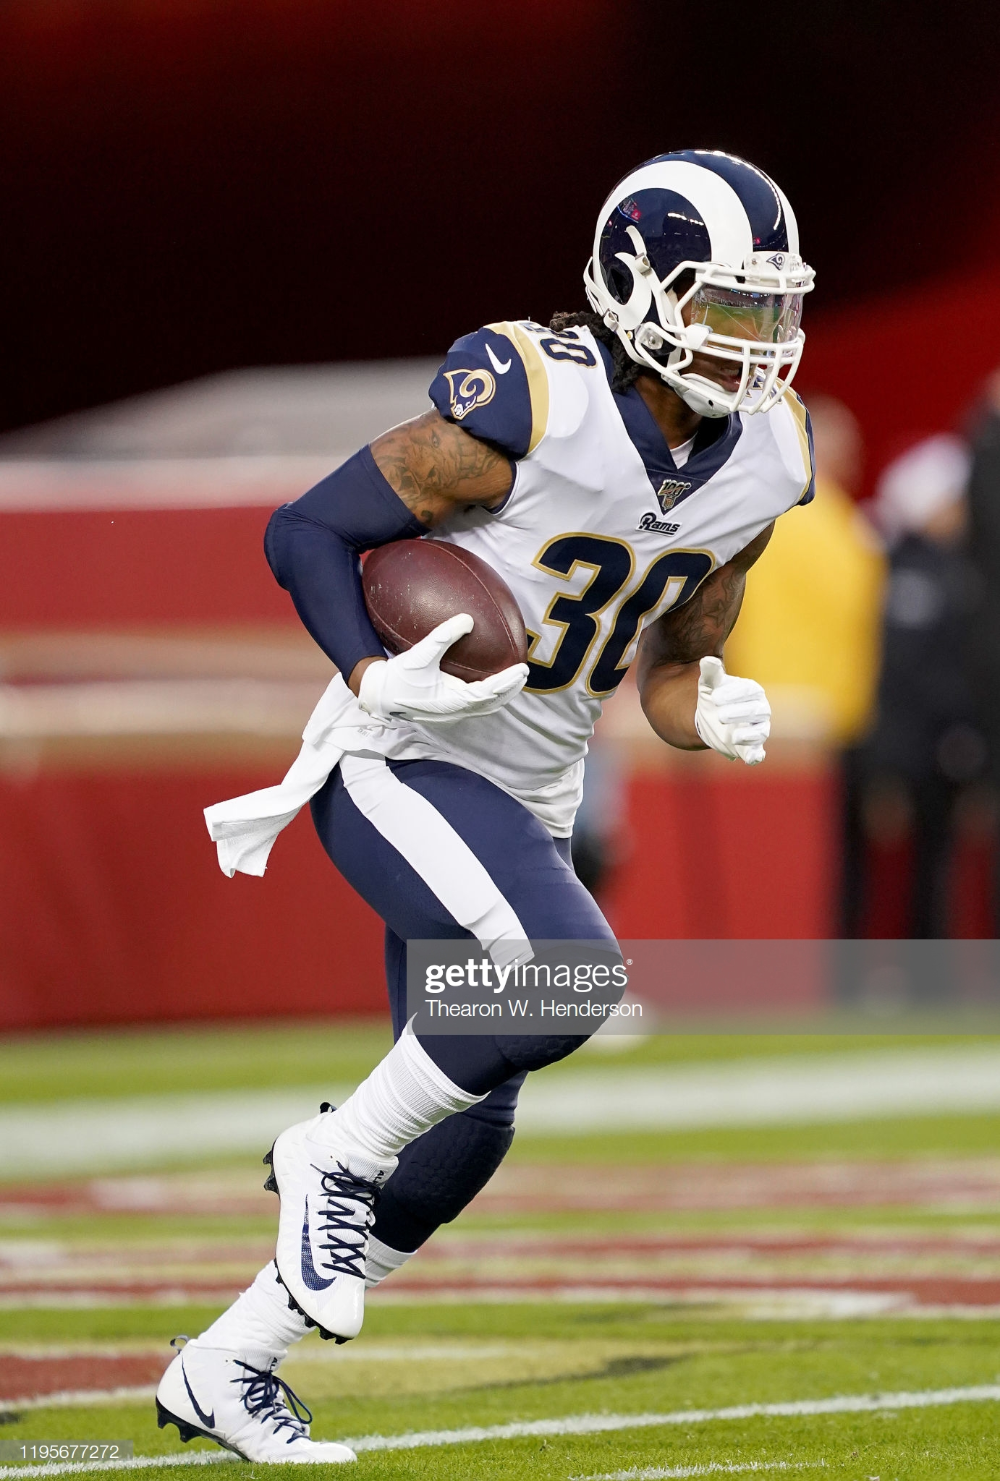 Todd Gurley Of The Los Angeles Rams Warms Up During Pregame Warm Ups In 2020 With Images Todd Gurley Los Angeles Rams Warmup